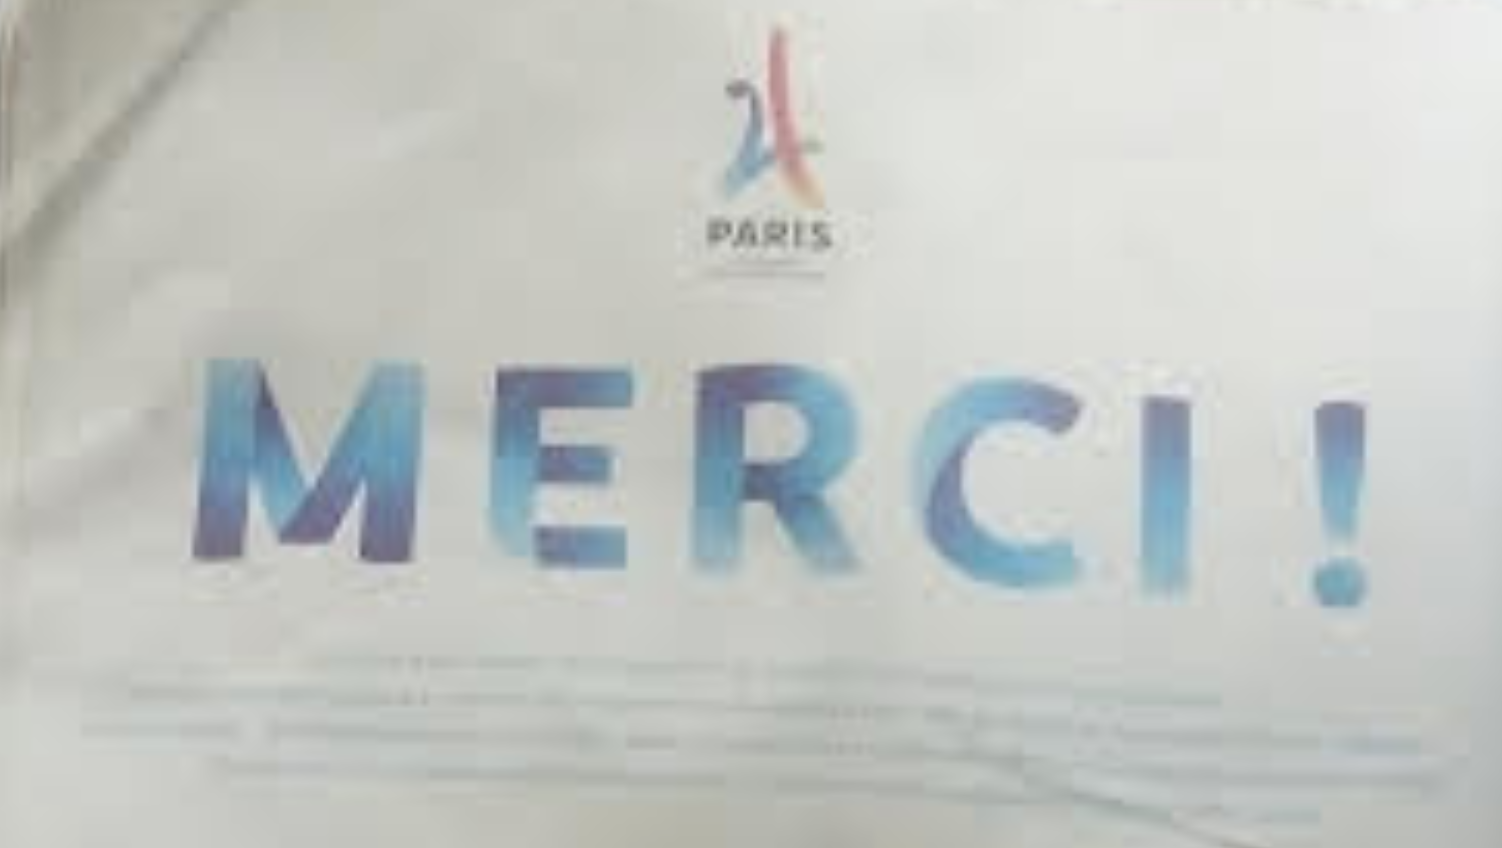 Paris 2024 : Merci qui !?